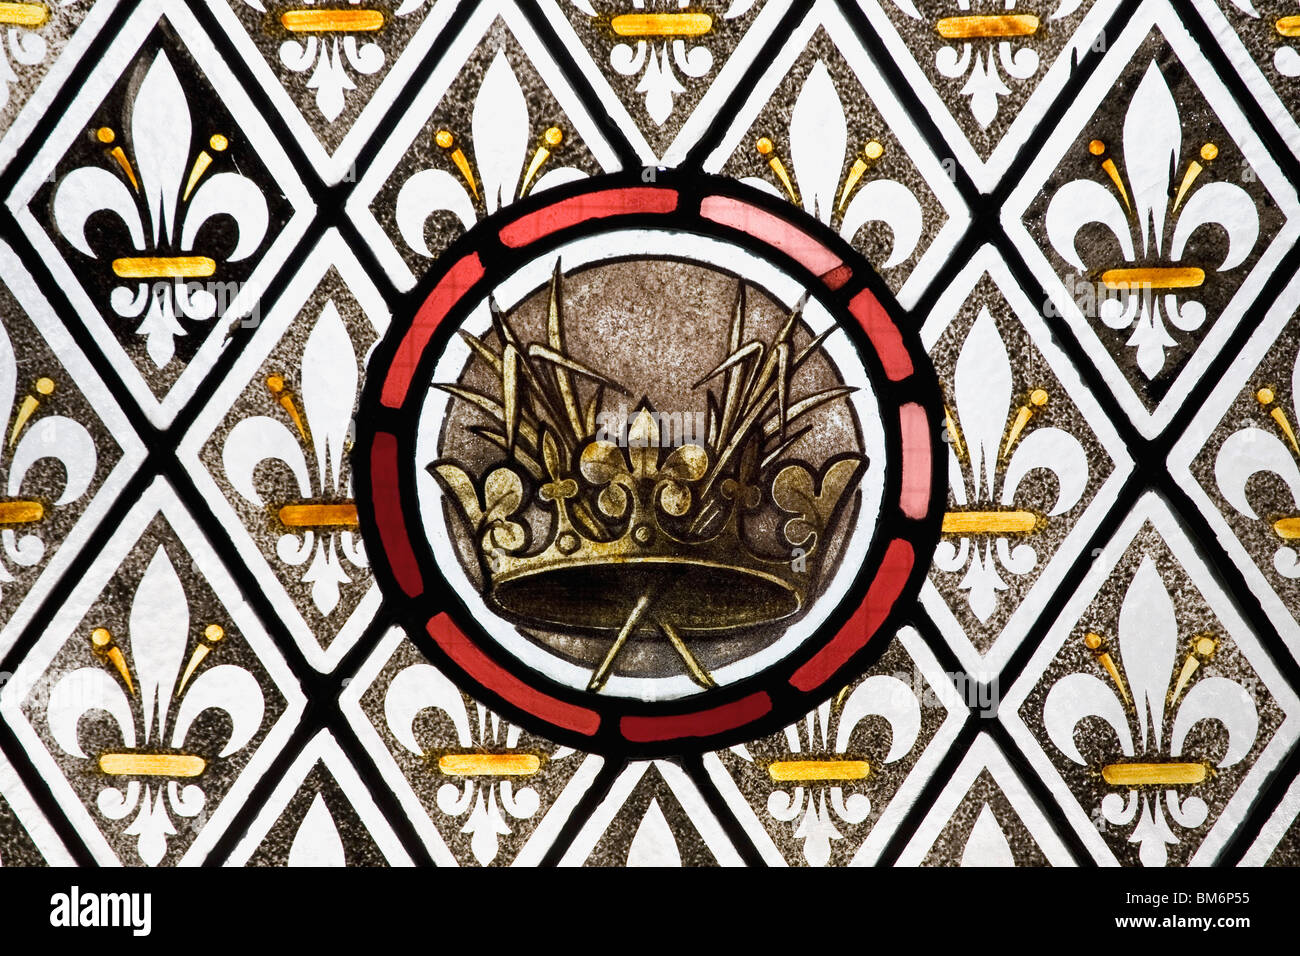 Stained Glass Window Detail - Stock Image